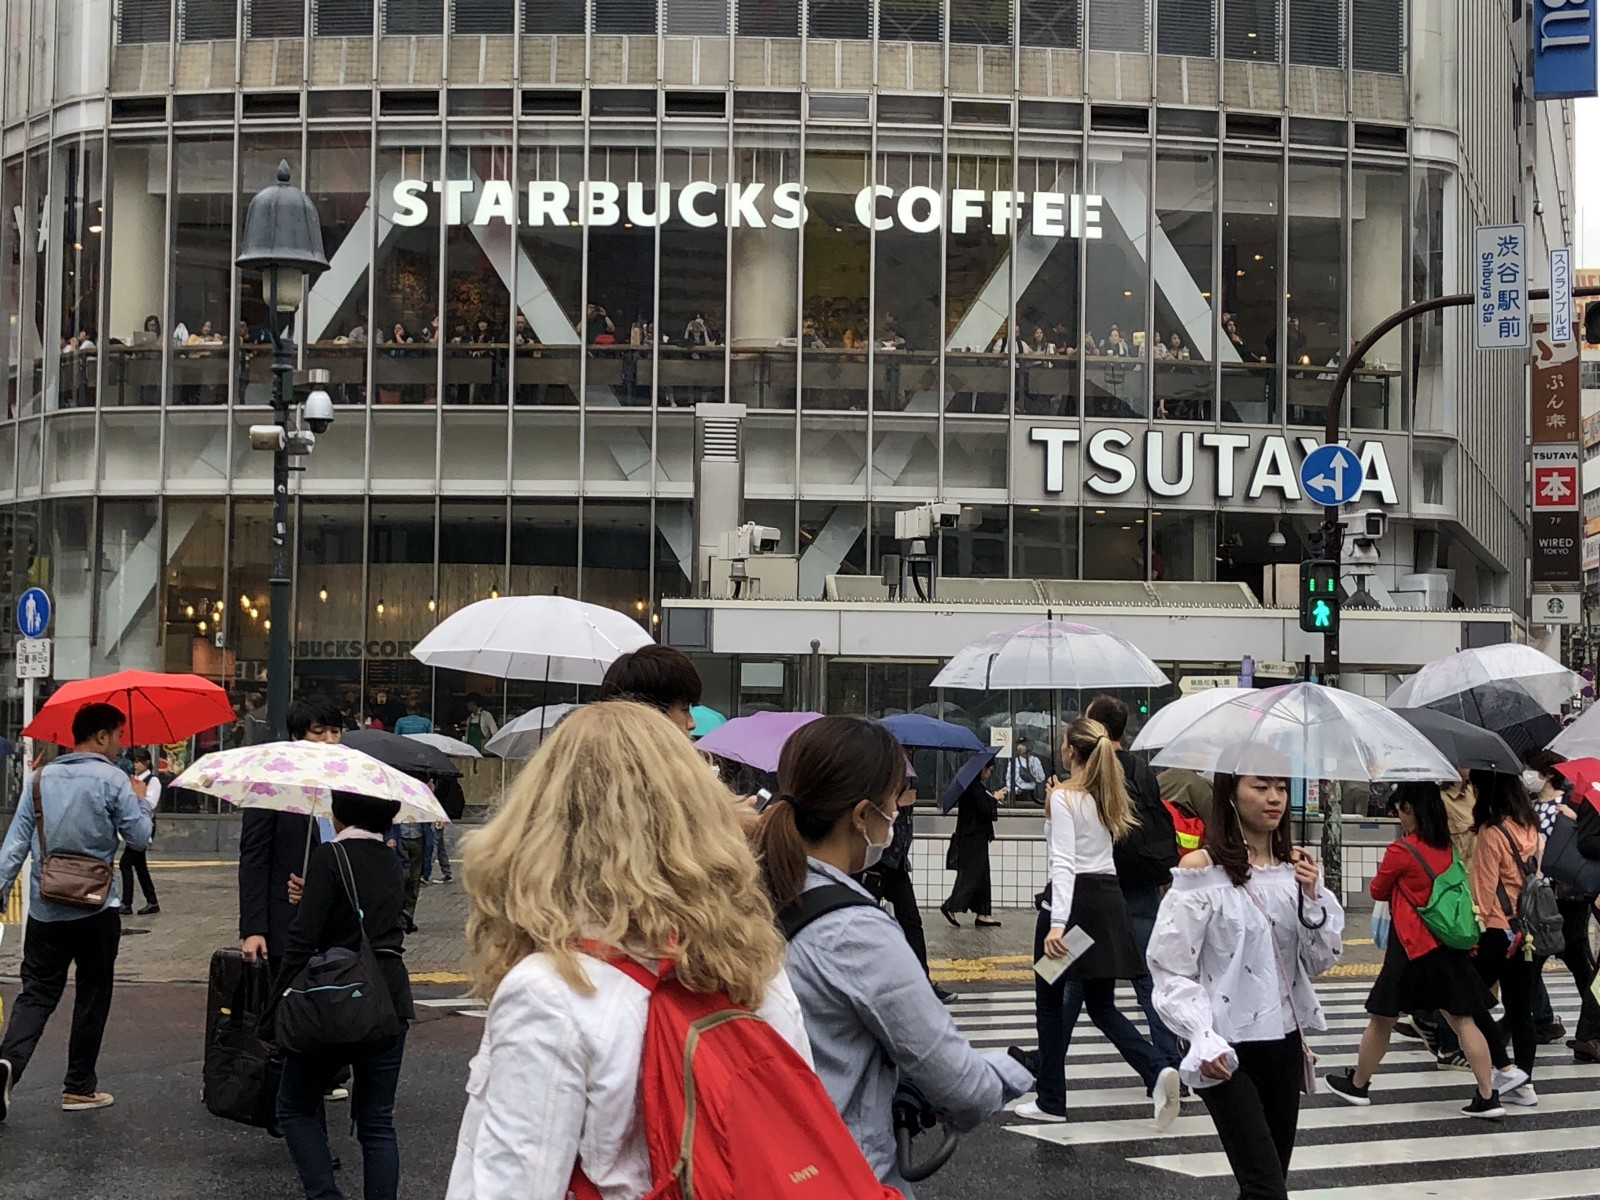 STARBUCKS COFFEE in front of Shibuya Crossing